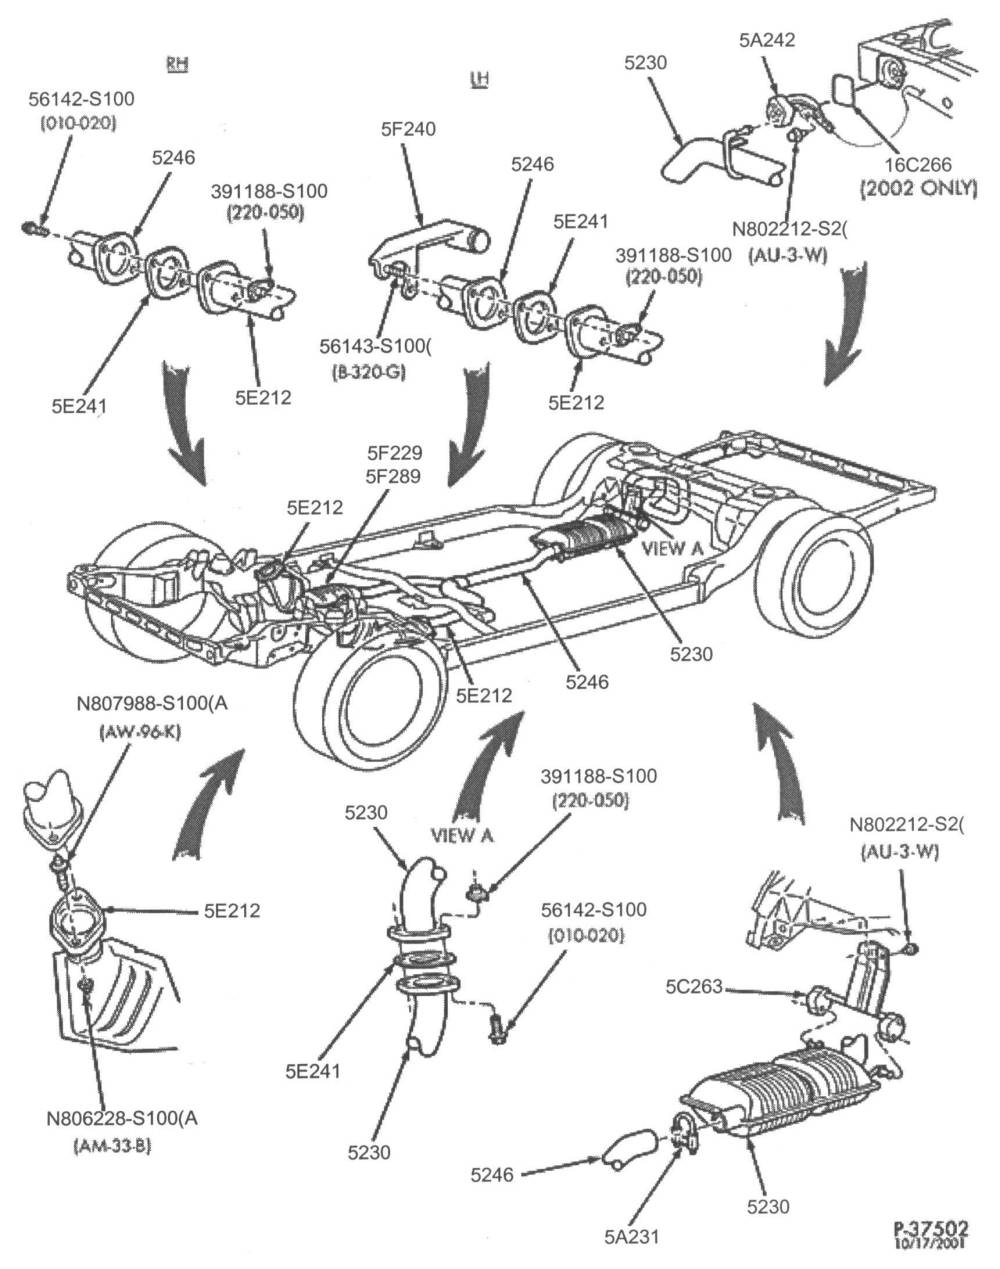 medium resolution of below are some parts diagrams for original equipment ford exhaust system service parts that can be purchased at your local ford dealer